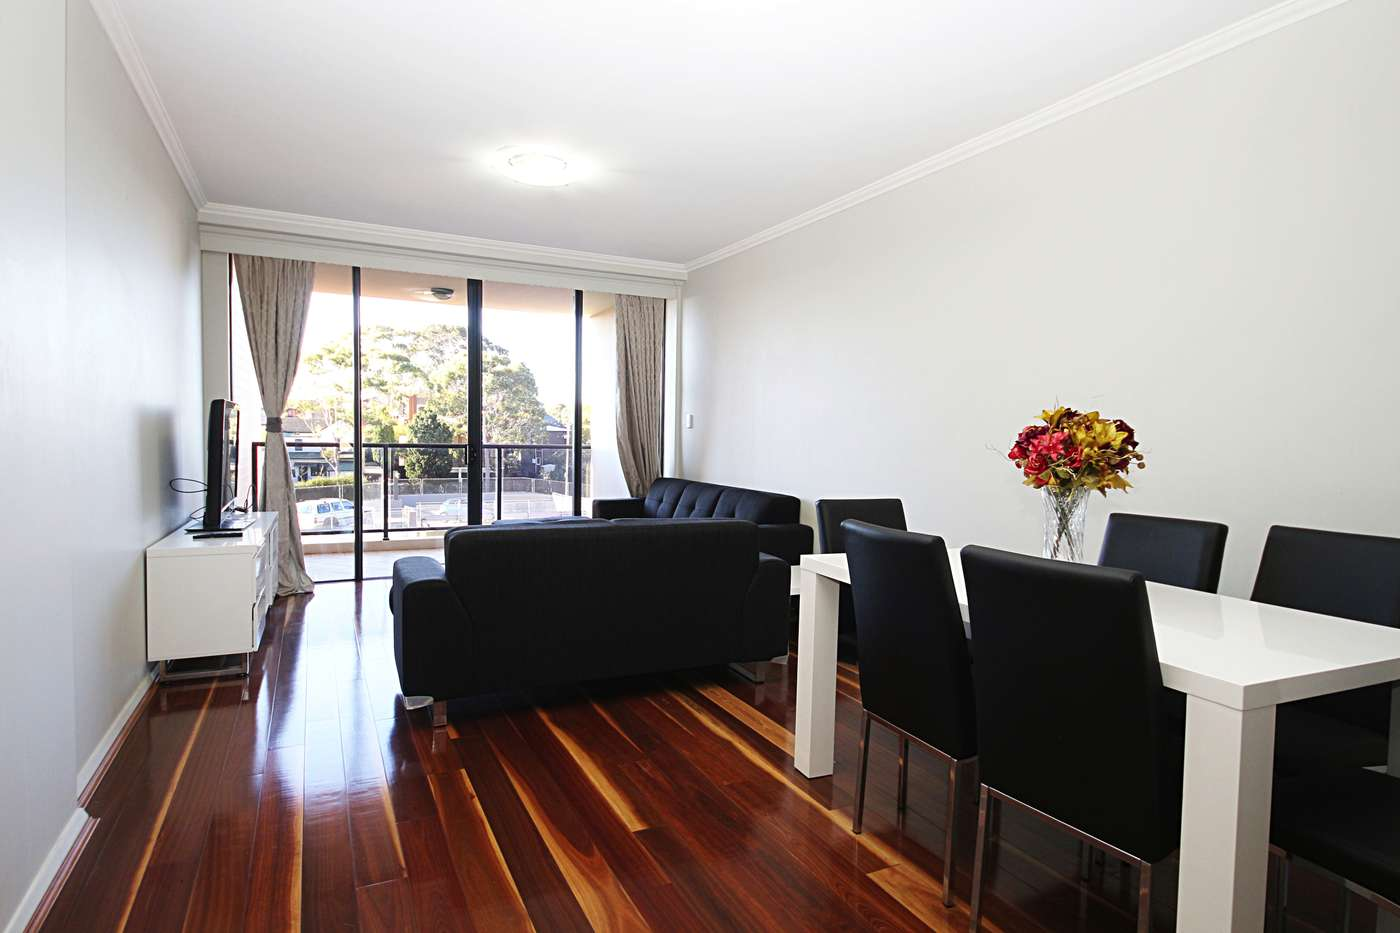 Main view of Homely apartment listing, 135/1 Brown Street, Ashfield, NSW 2131